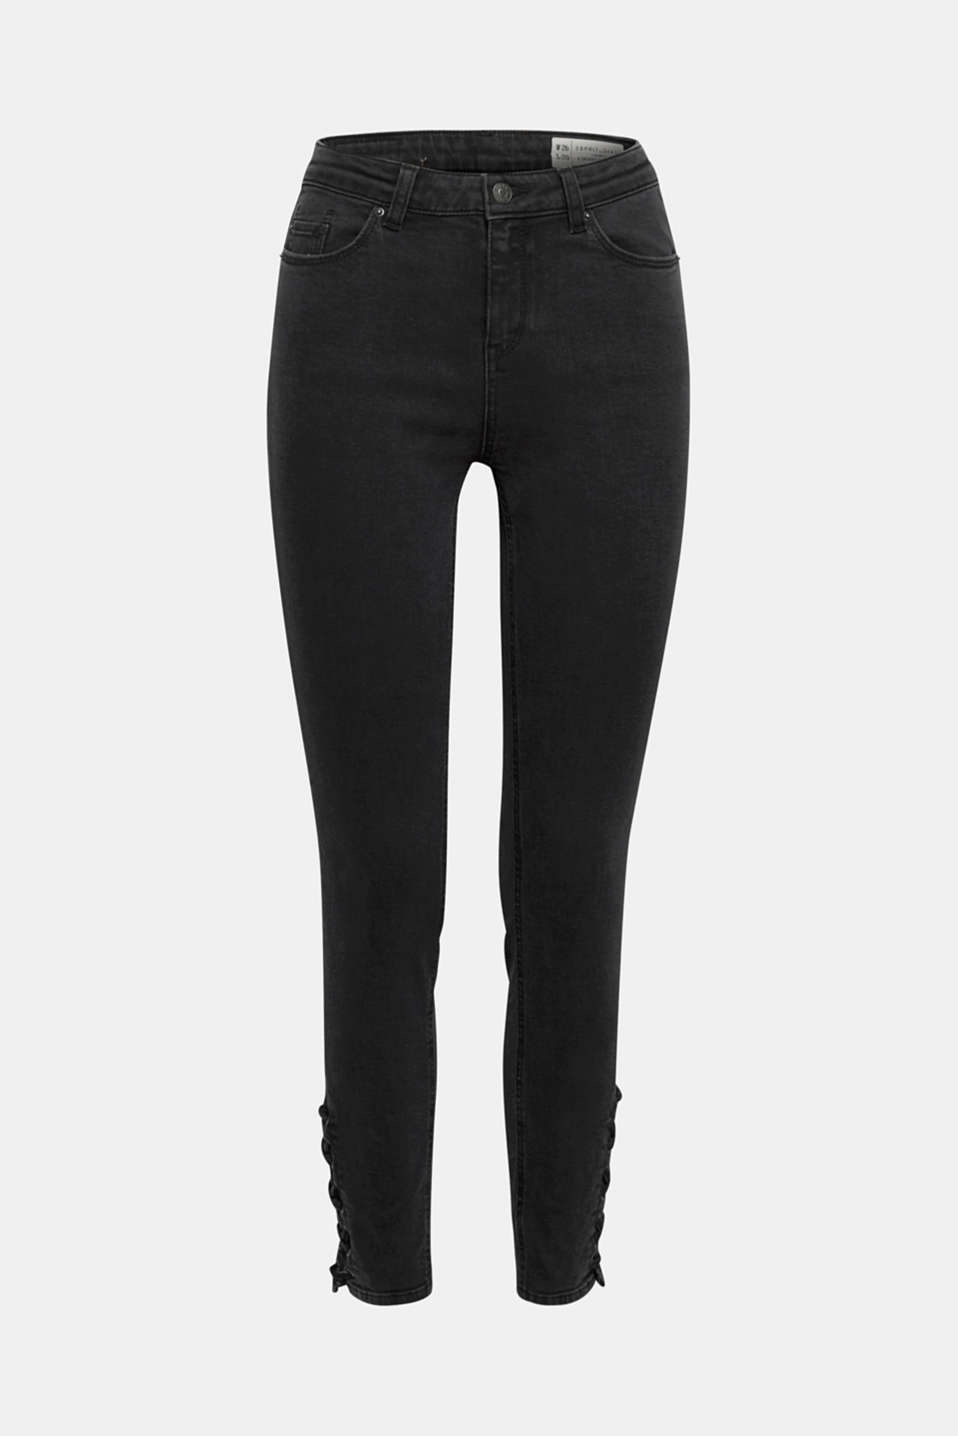 The lacing effects on the side at the leg hem emphasise the skinny line of these high-waisted jeans!